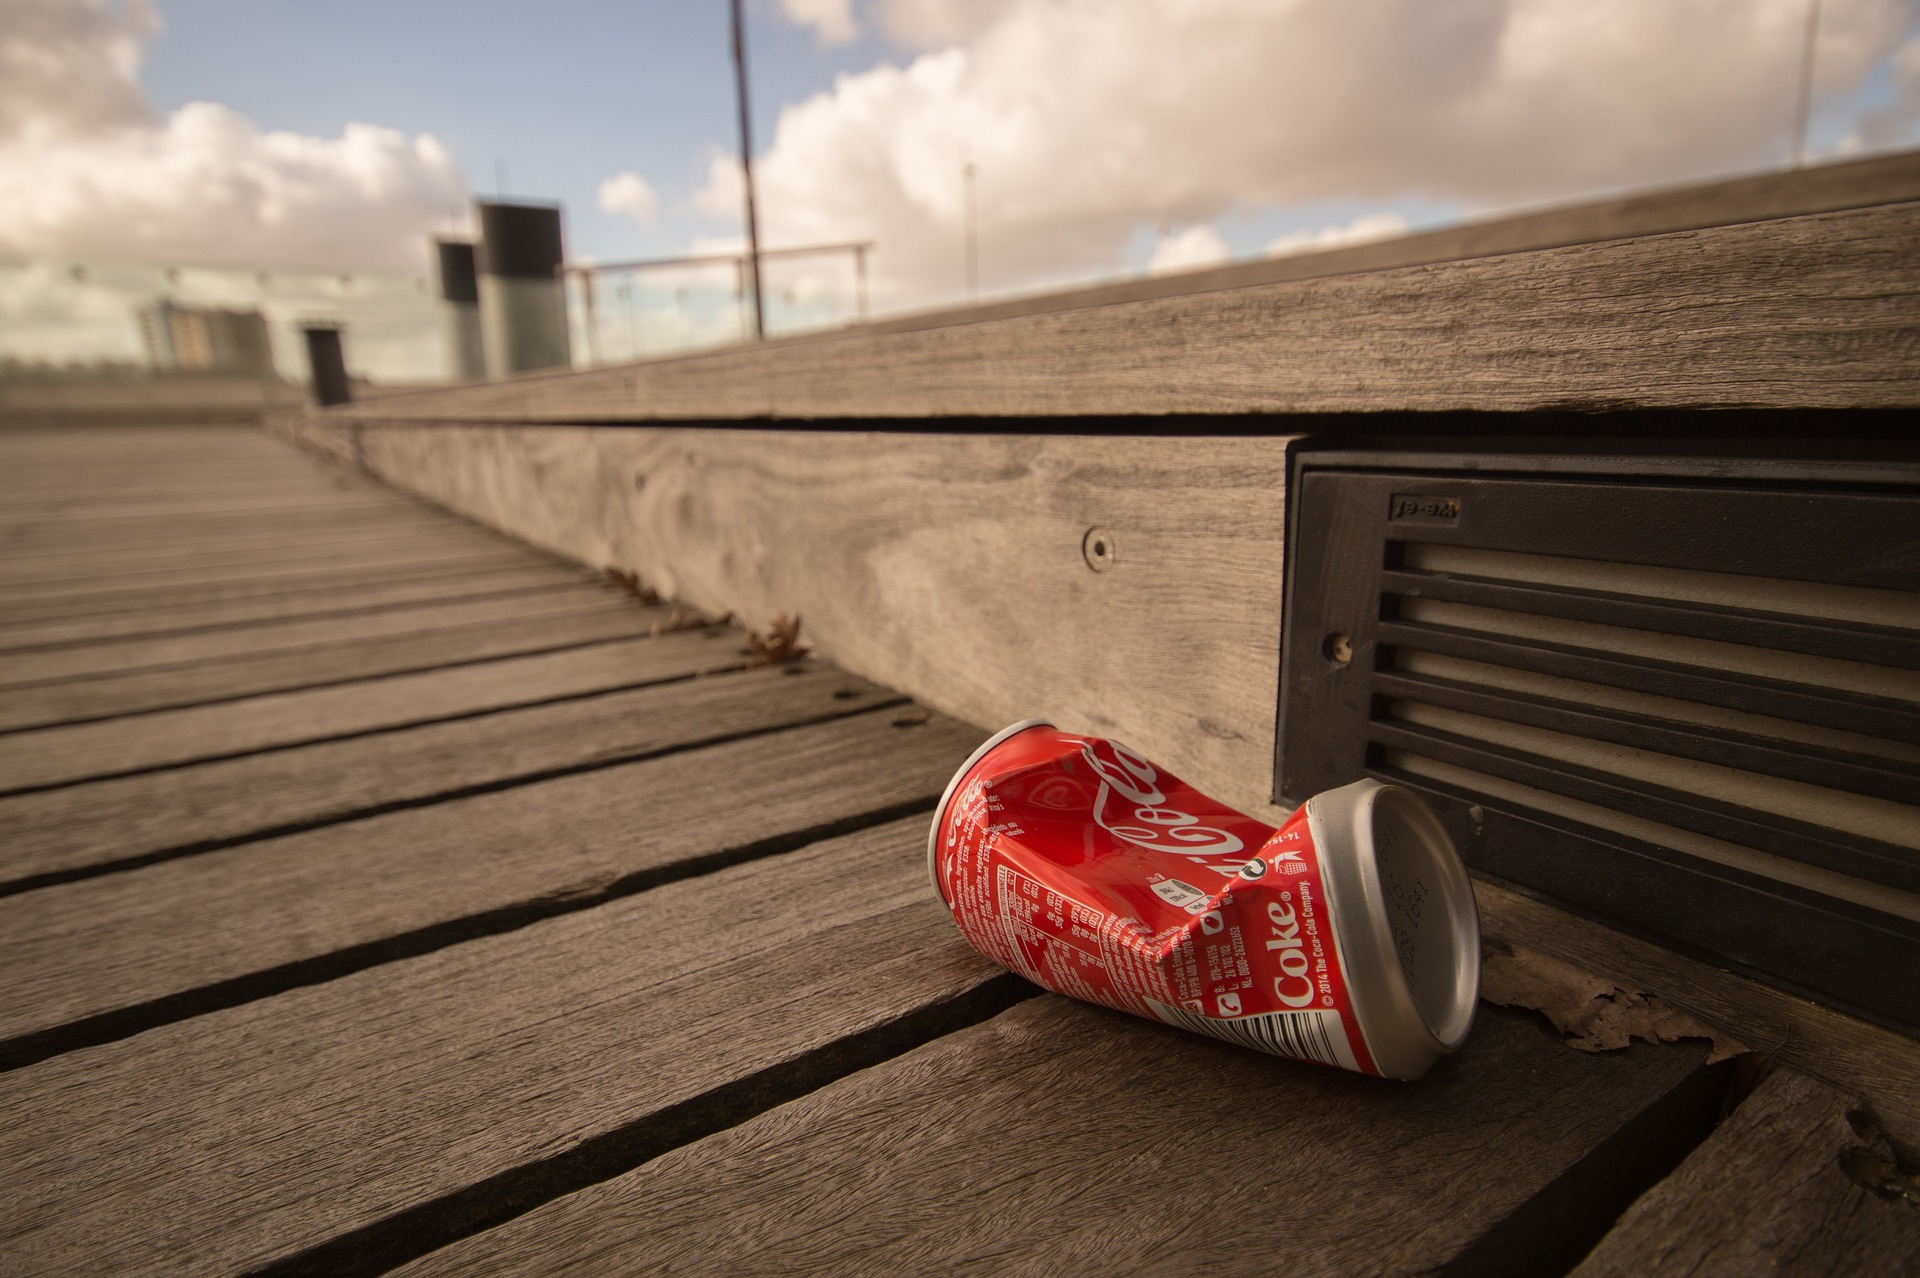 crushed Coke can laying on a wooden dock under a cloudy sky